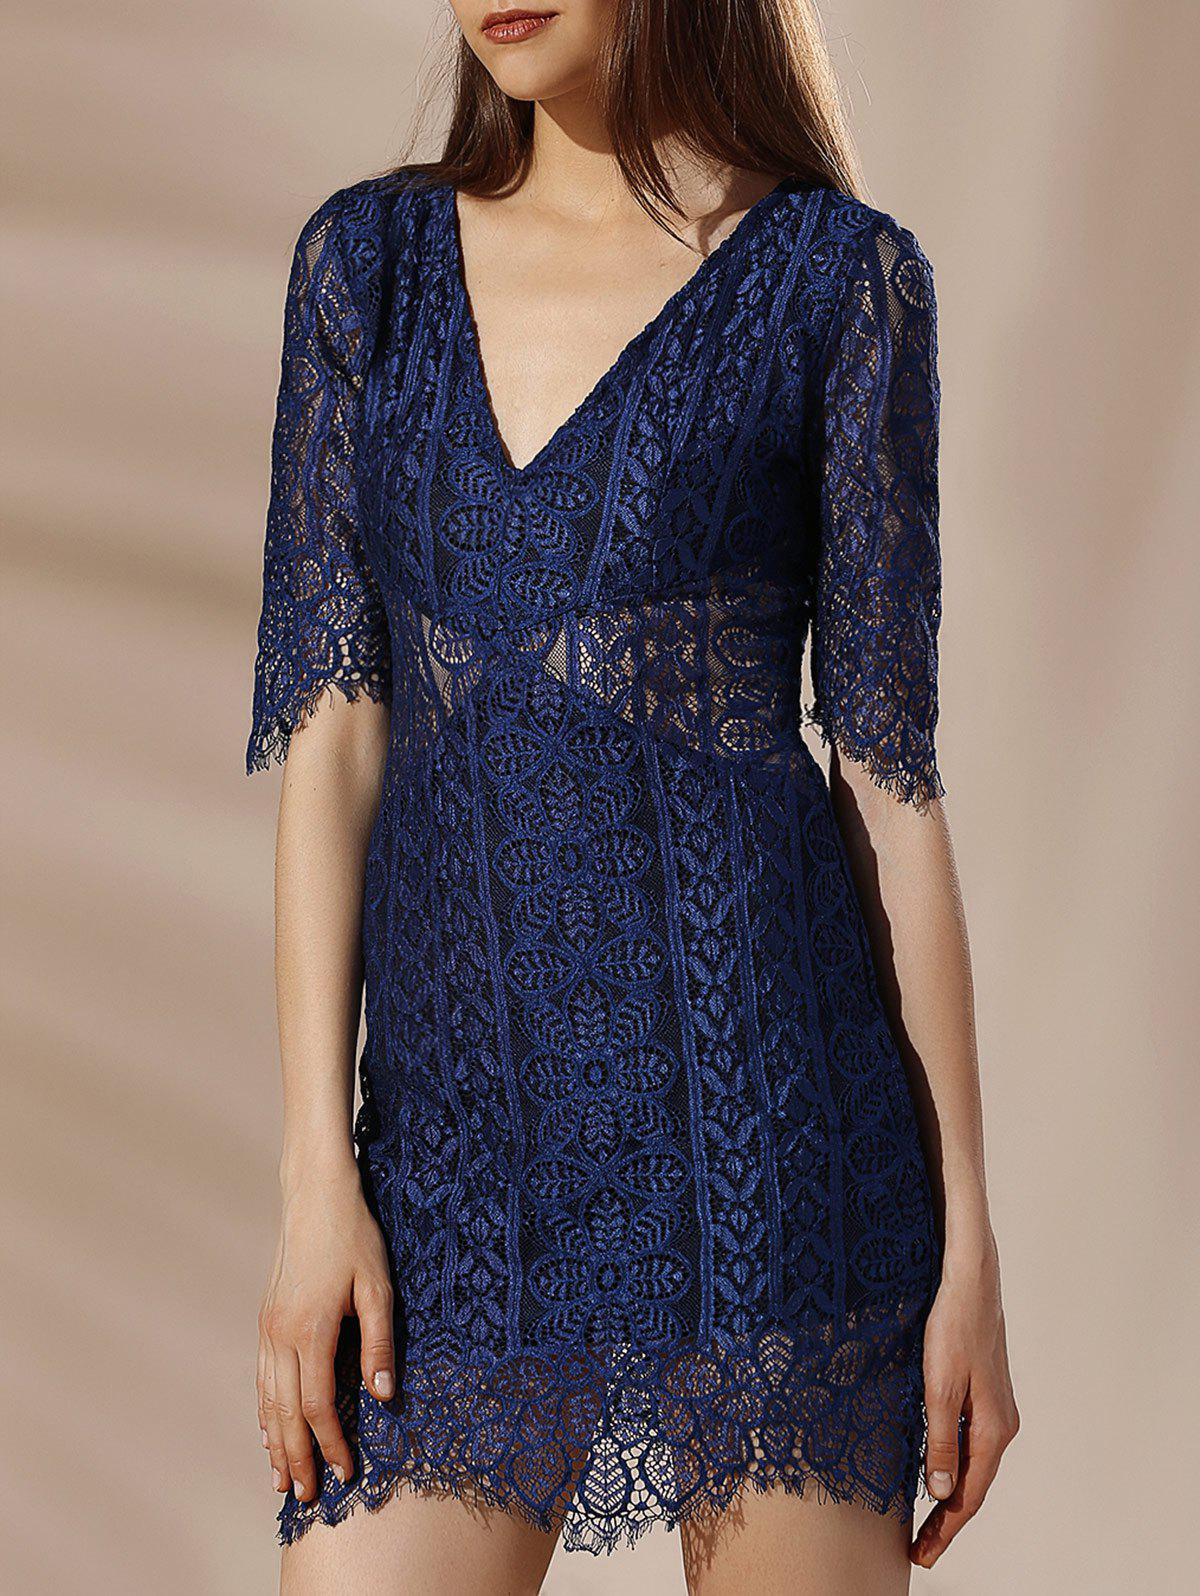 Sale Alluring Plunging Neck Half Sleeve Lace Design Women's Dress